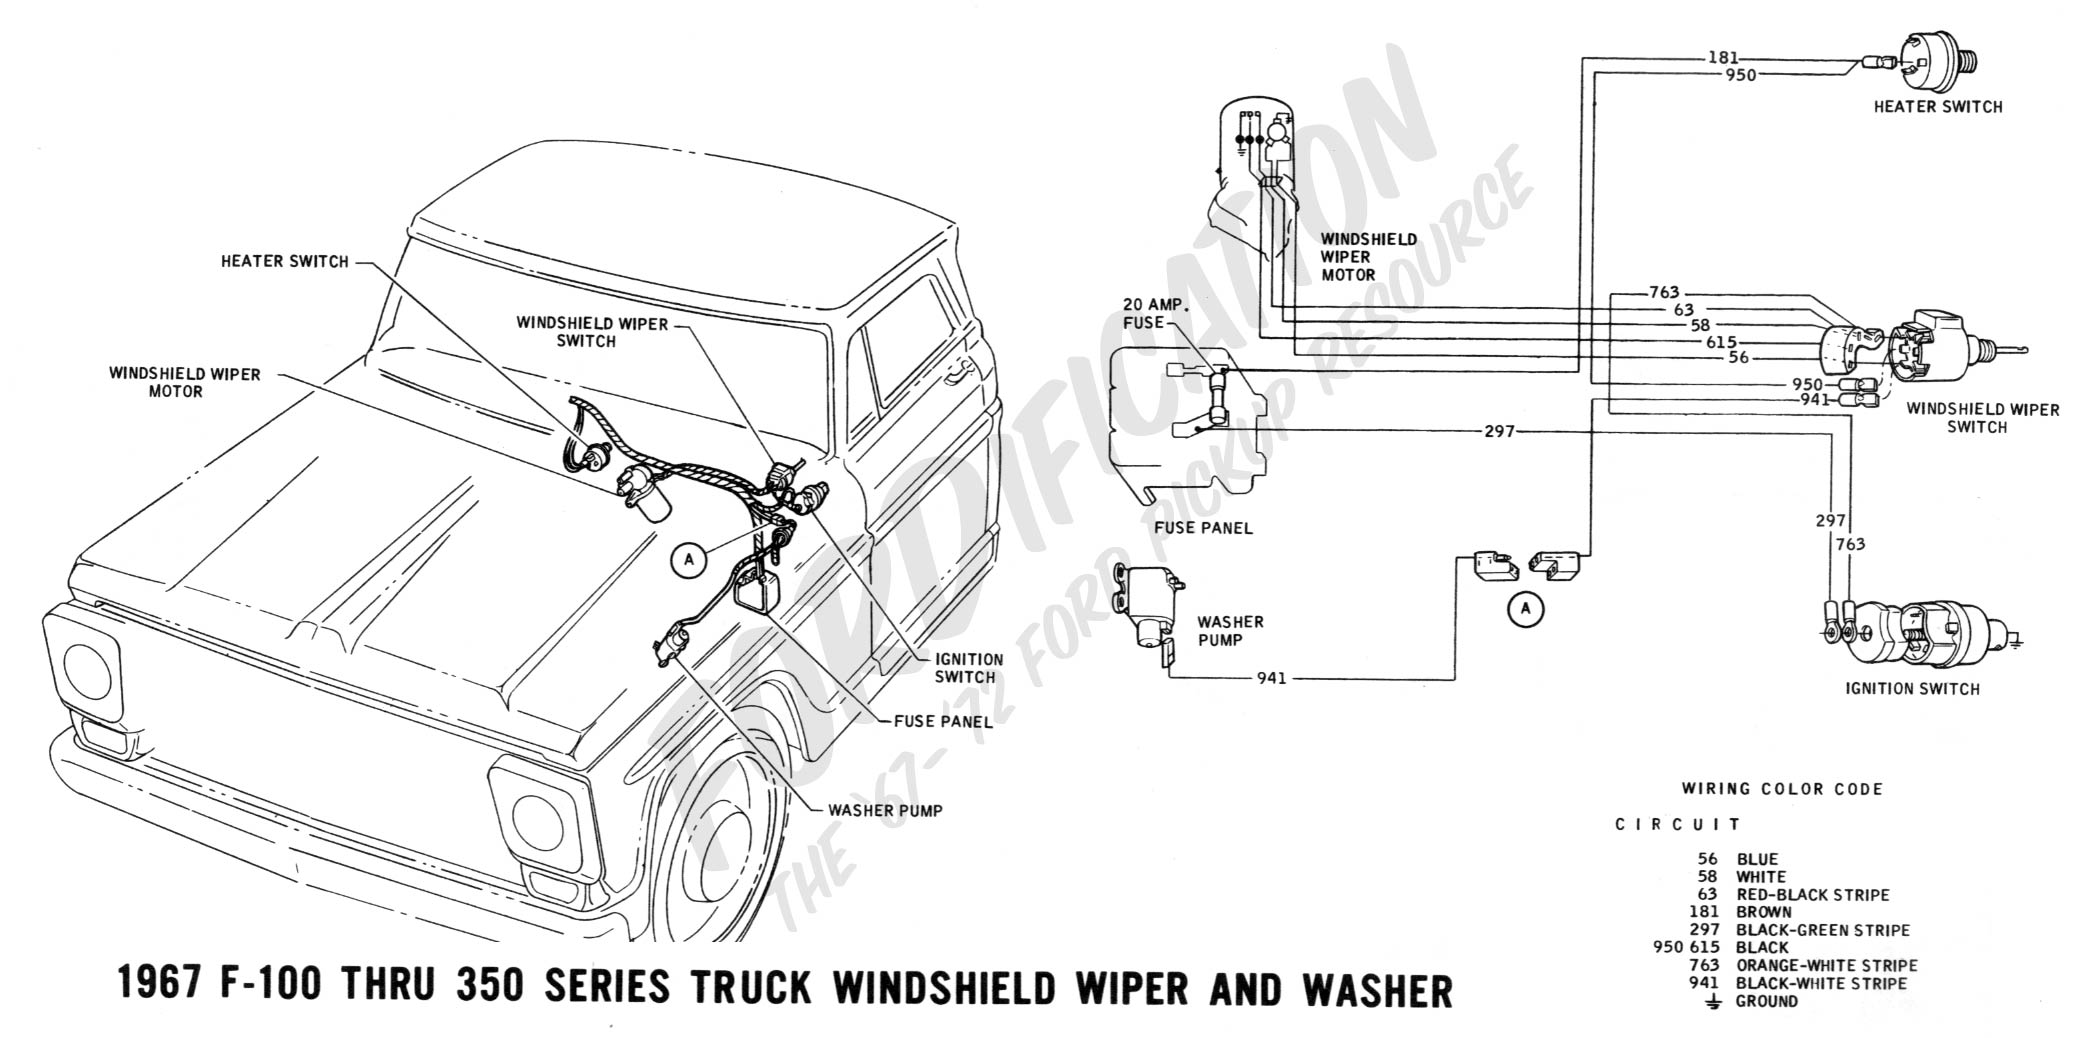 1993 Ford Bronco Fuse Panel Diagram Great Design Of Wiring 2004 Accord Truck Technical Drawings And Schematics Section H Box Layout 98 Ranger